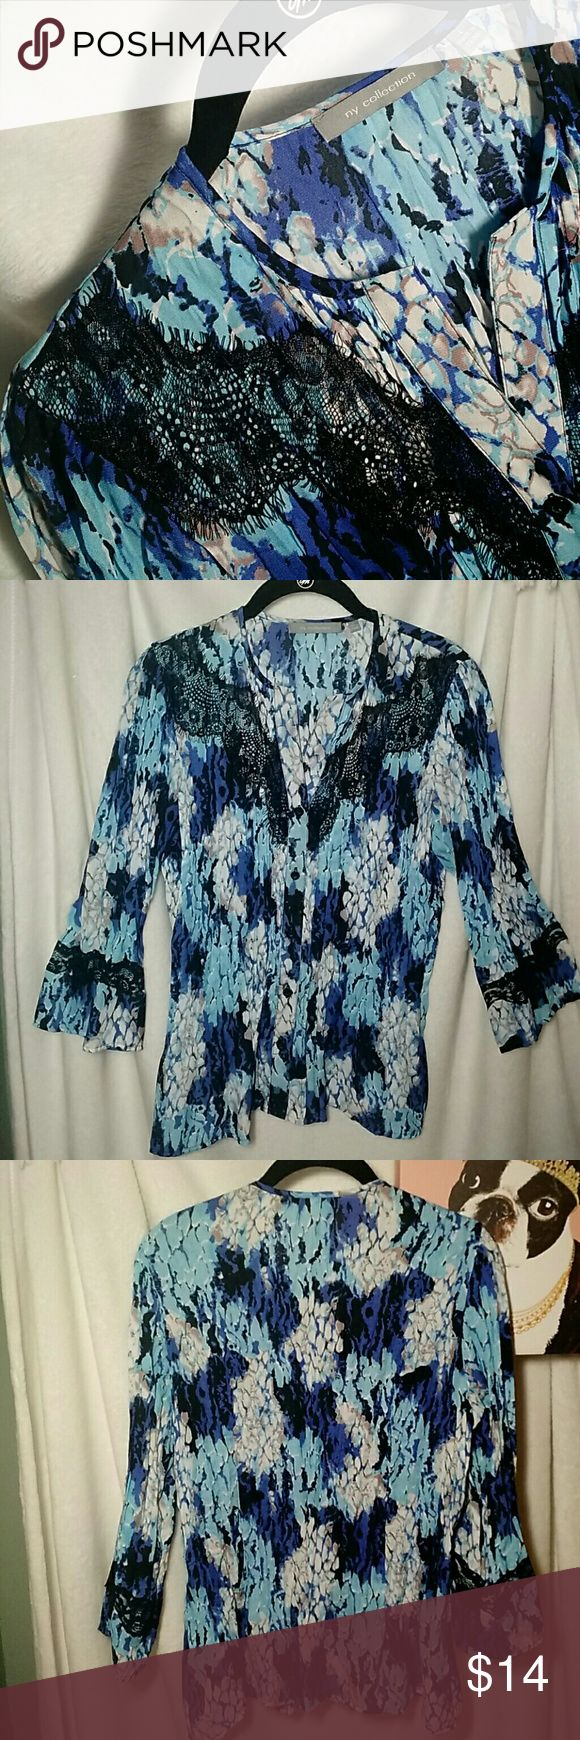 NWOT!  NY Collection Blouse Watercolor hues in blues!  Pleated all over w/black lace detail on front and sleeves.  Button down, no collar.  100% polyester.  Machine wash cold.  Line dry. NY Collection Tops Blouses